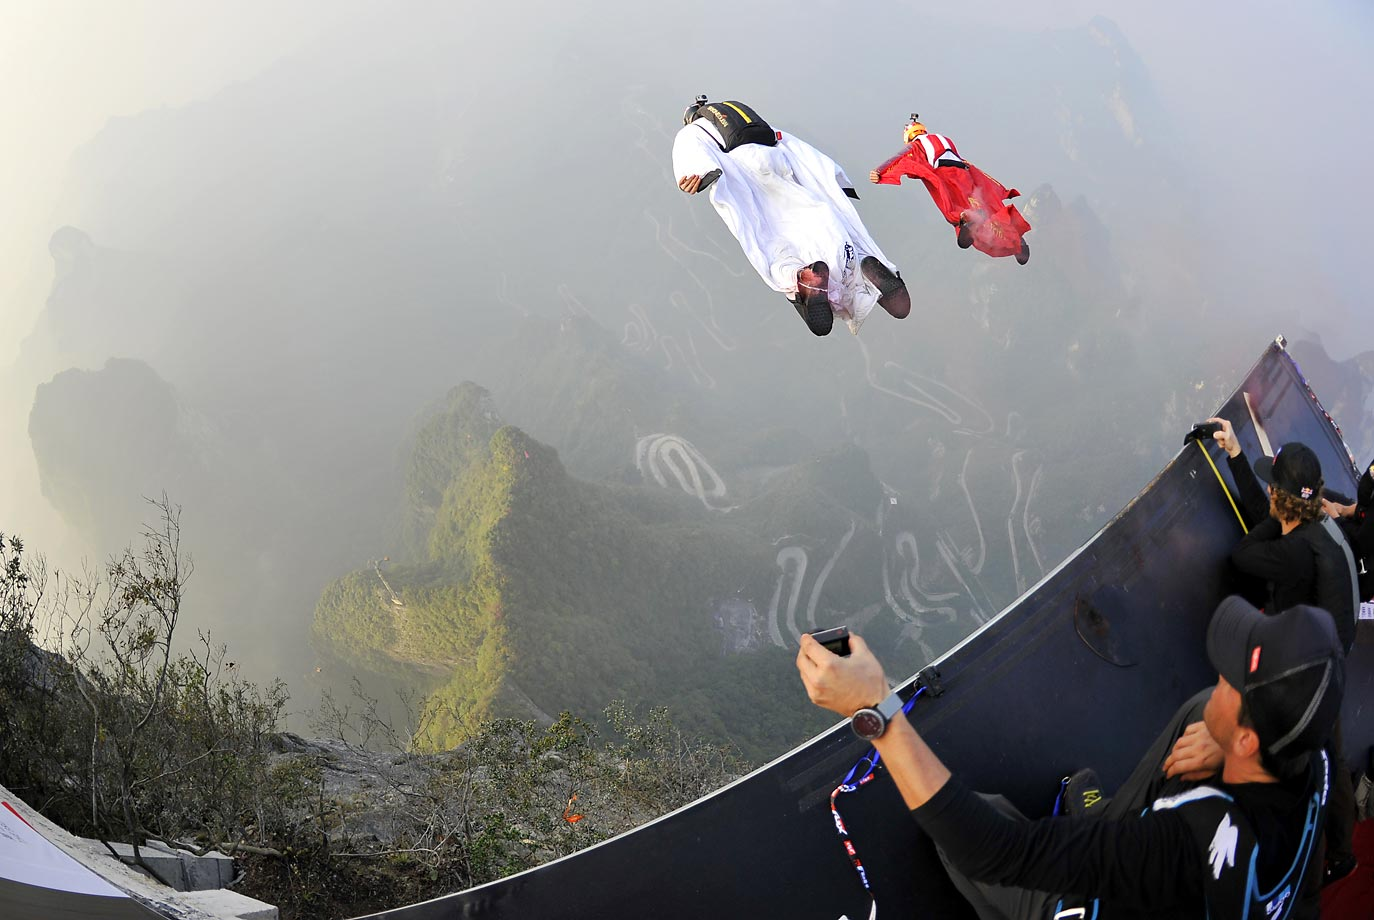 The Wingsuit Flying World Championship in Zhangjiajie, Hunan province of China.